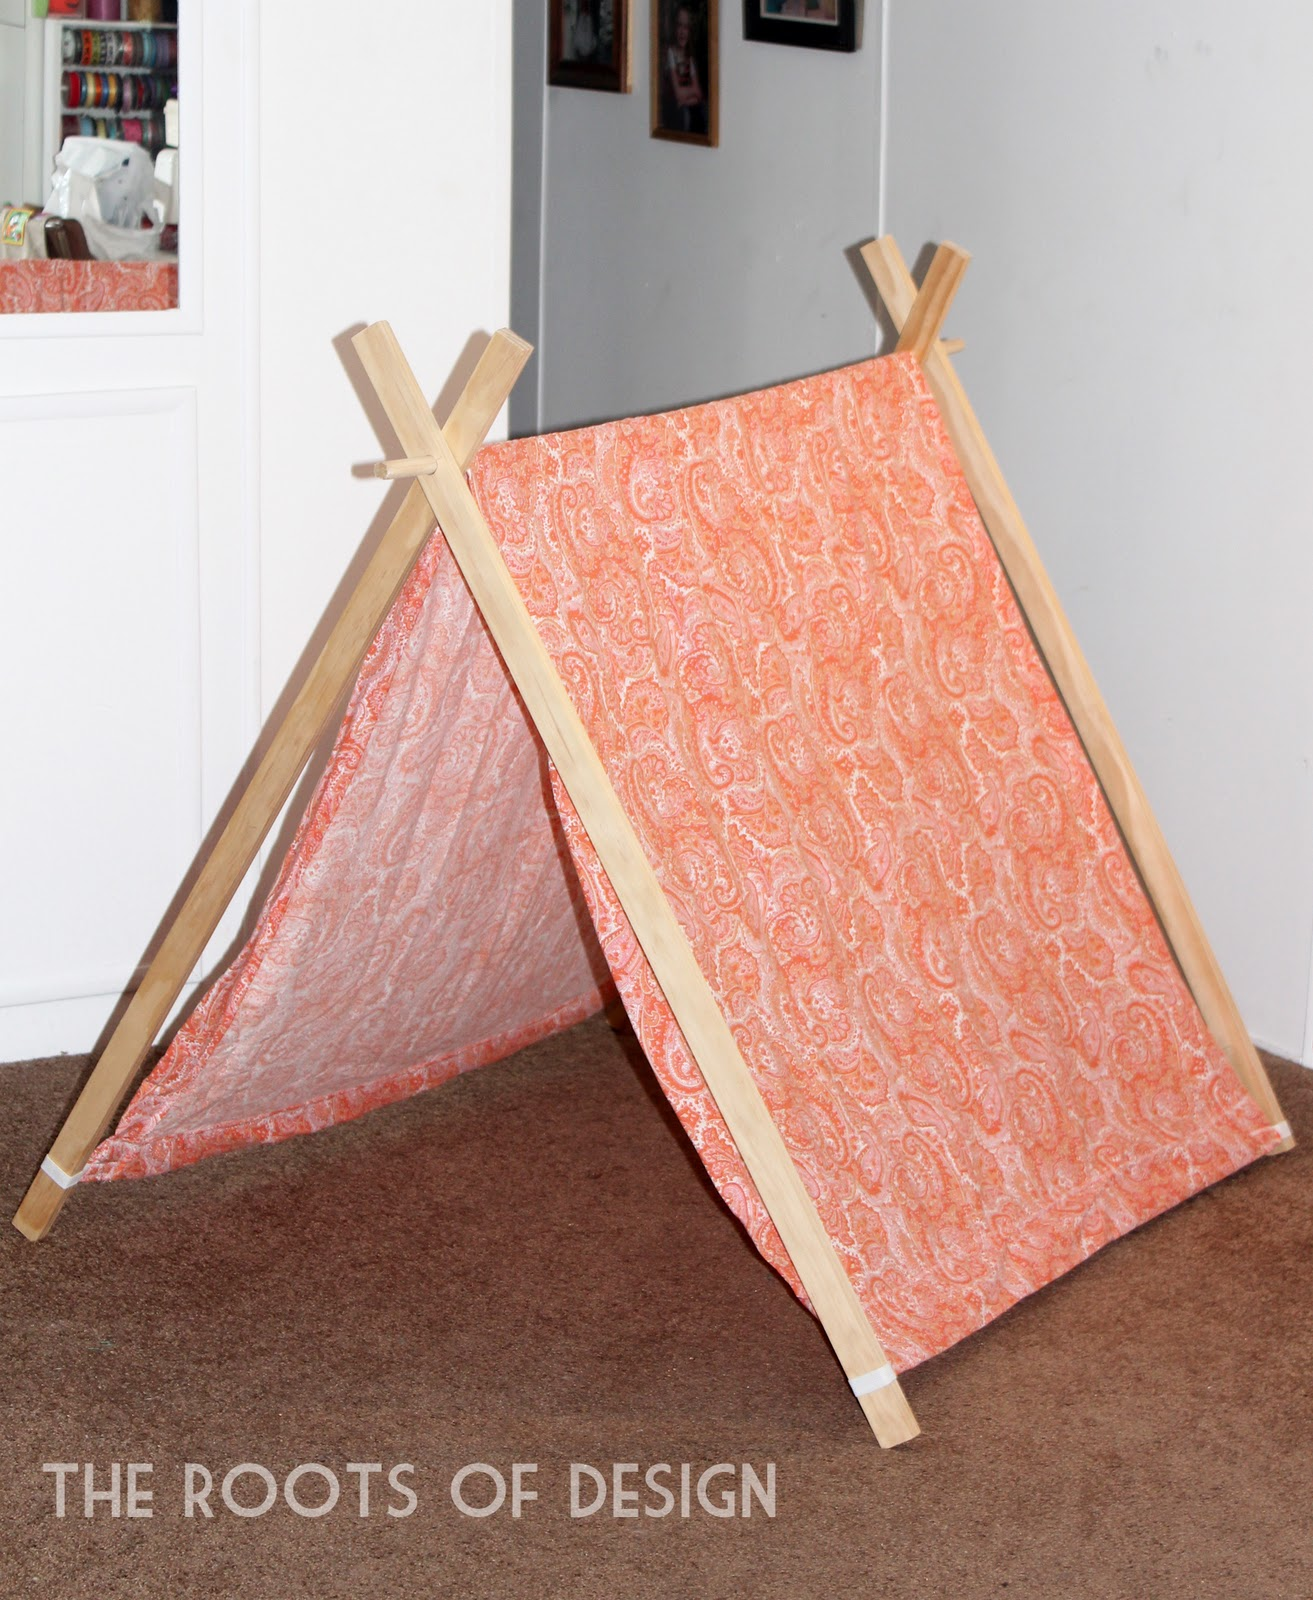 The Roots of Design: DIY A-frame Play Tent